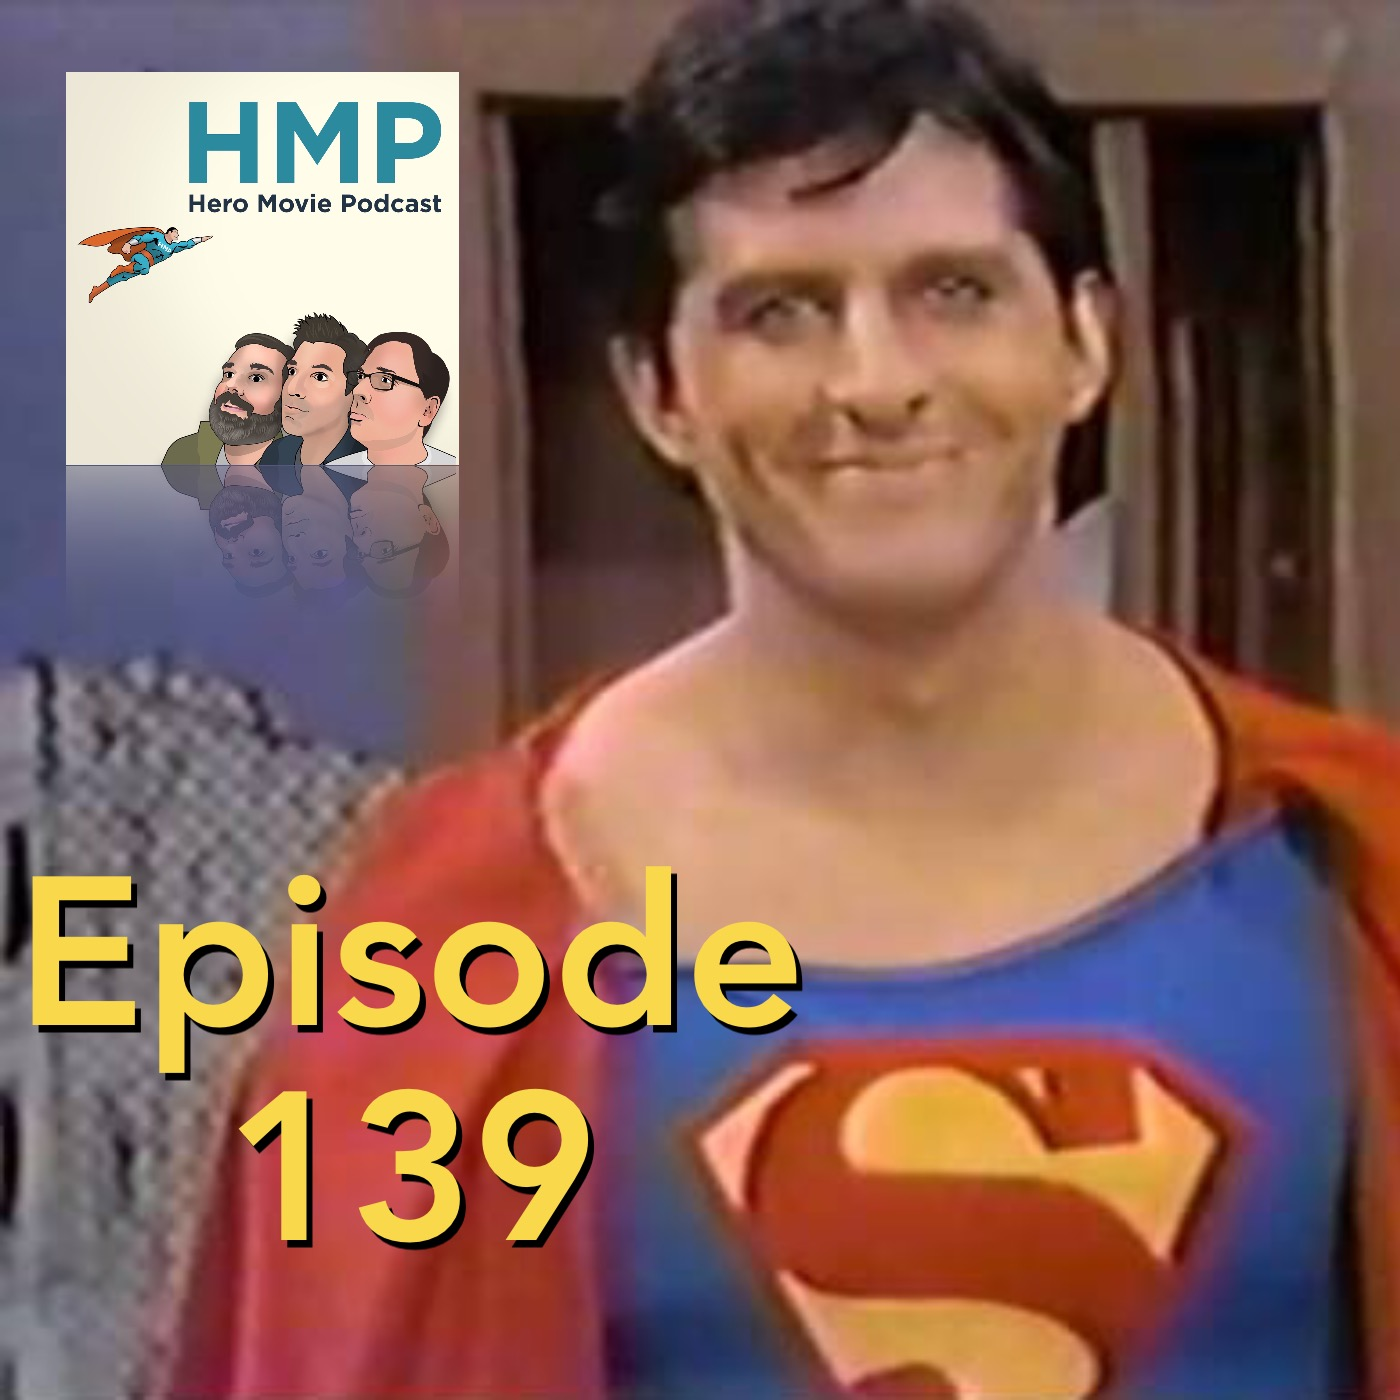 Episode 139- It's A Bird, It's A Plane, It's Superman! (1975)